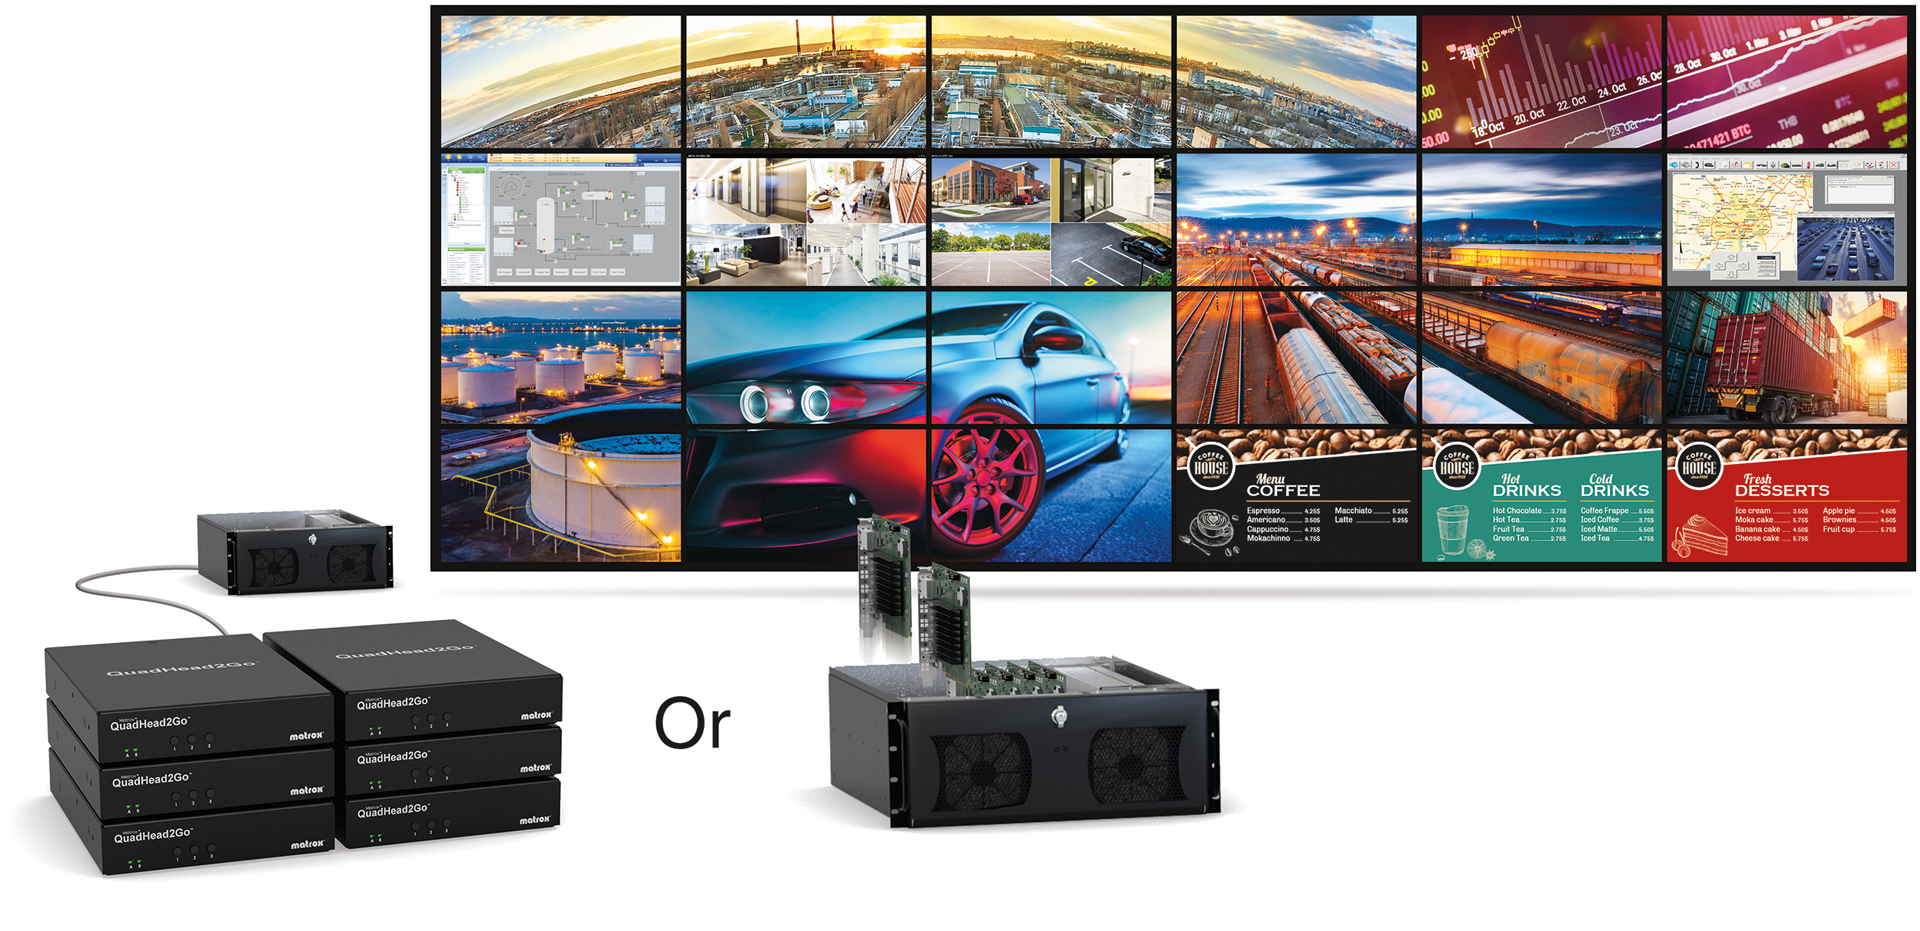 Matrox QuadHead2Go-Powered Video Walls Ideal for any Commercial or Control Room Environment